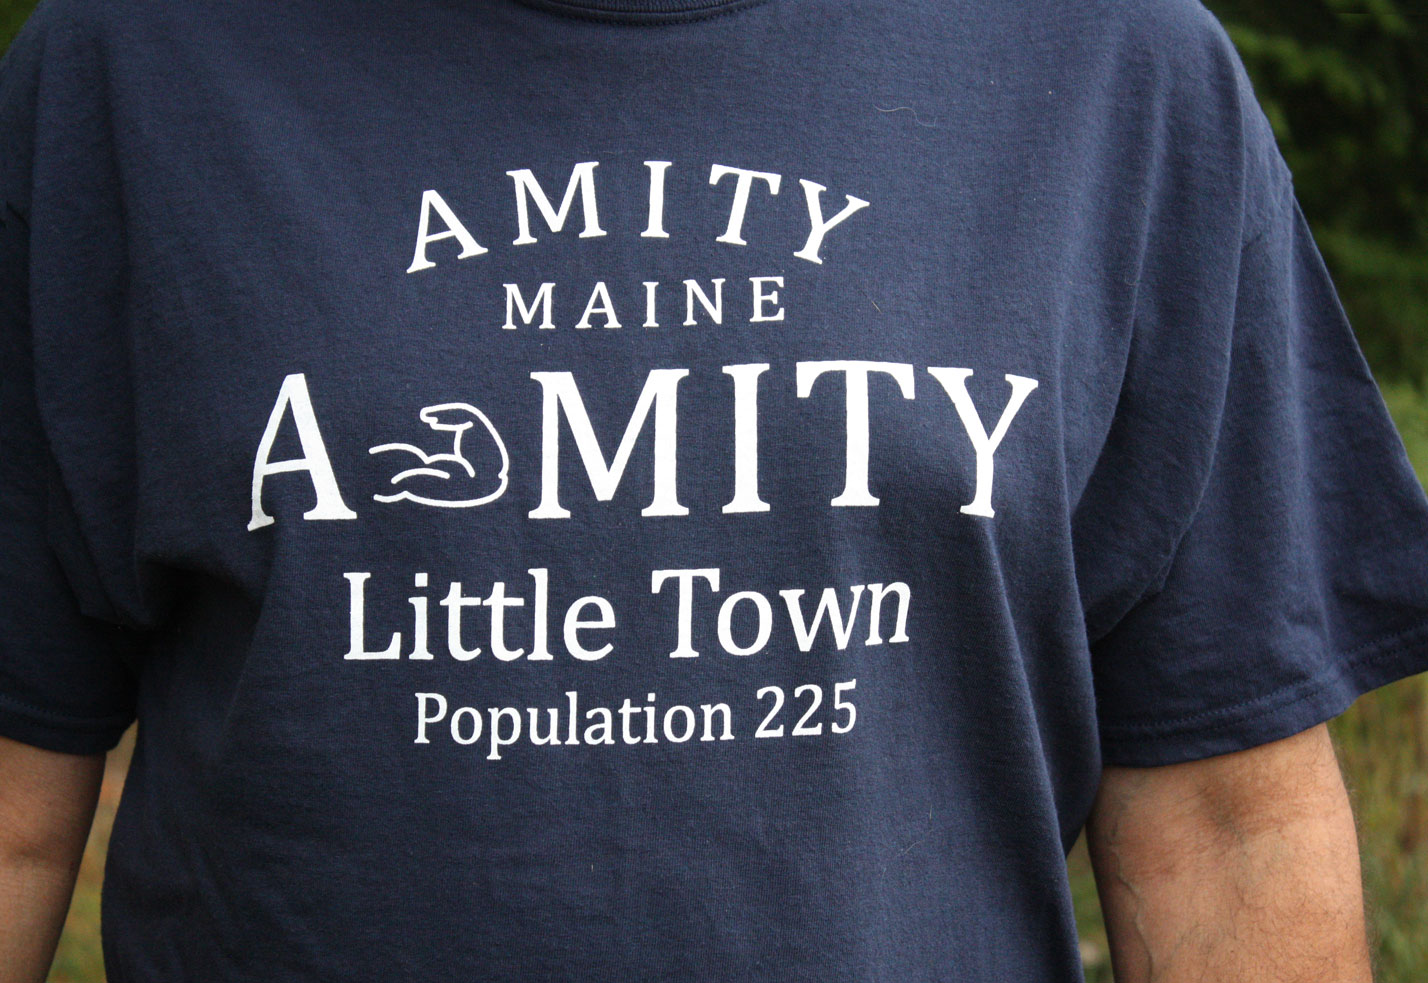 Amity Maine A-Mity Little Town T-Shirt